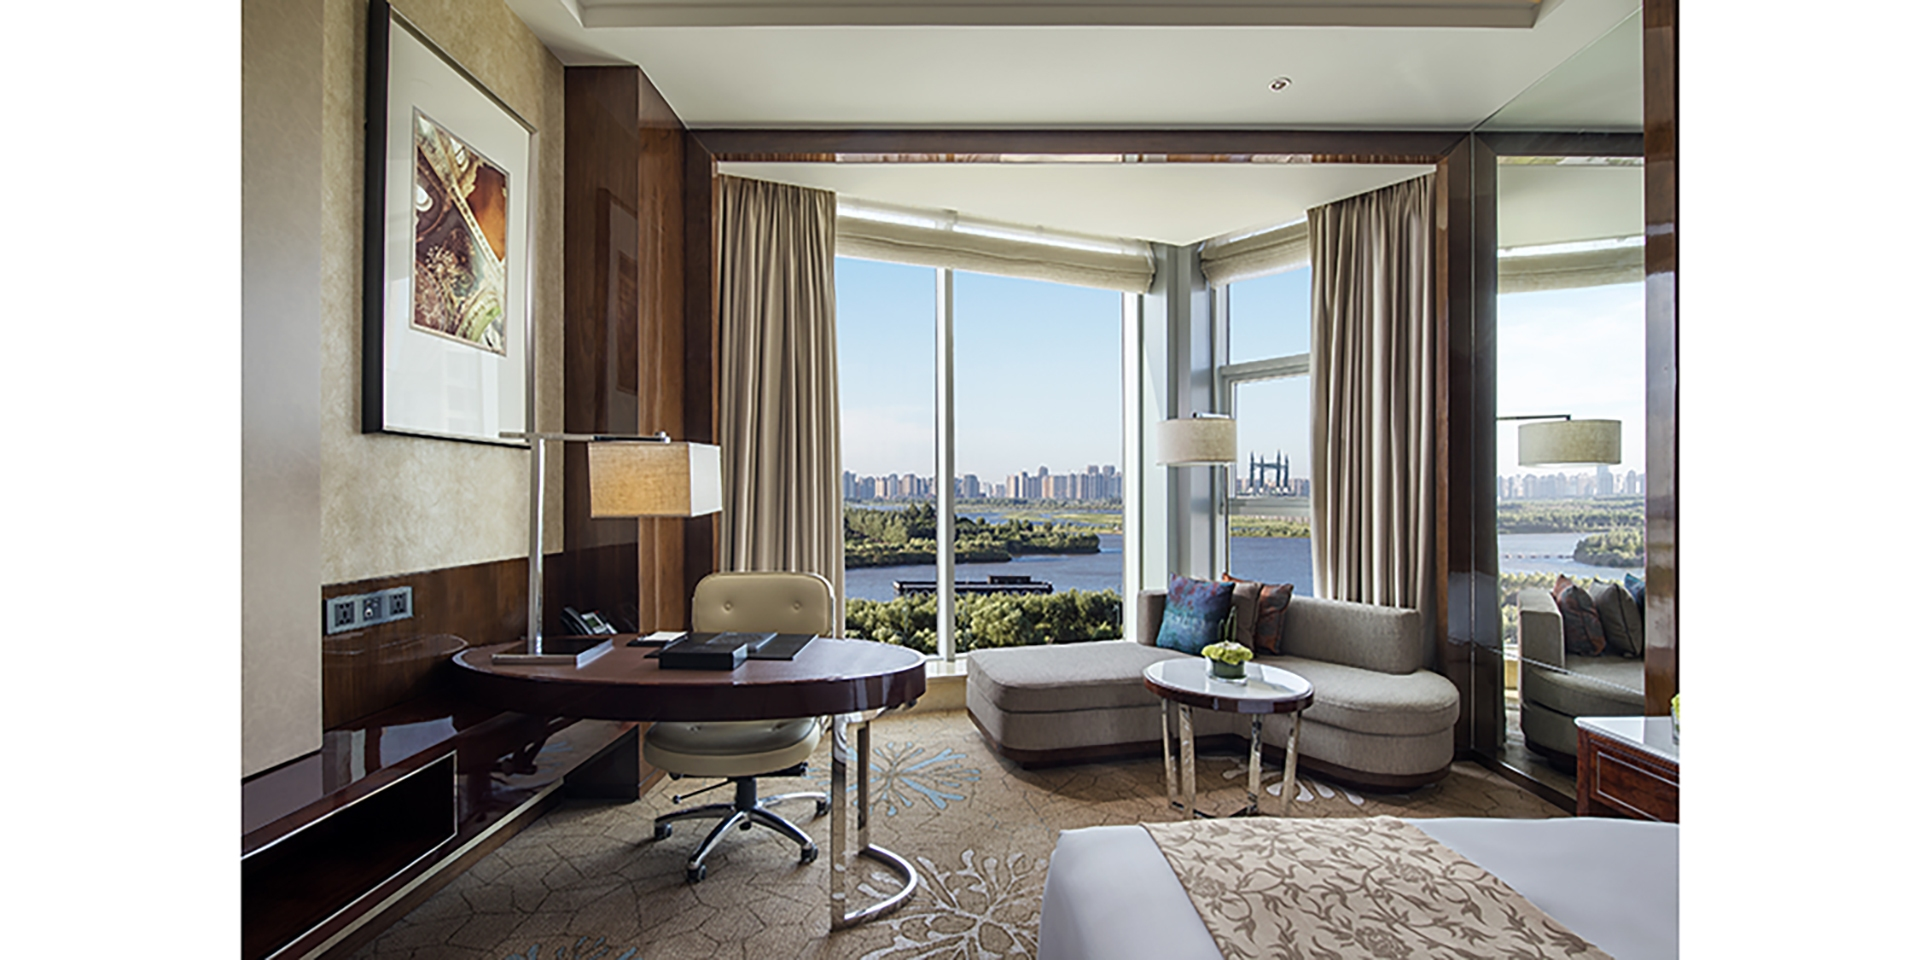 Executive River View King Room content image